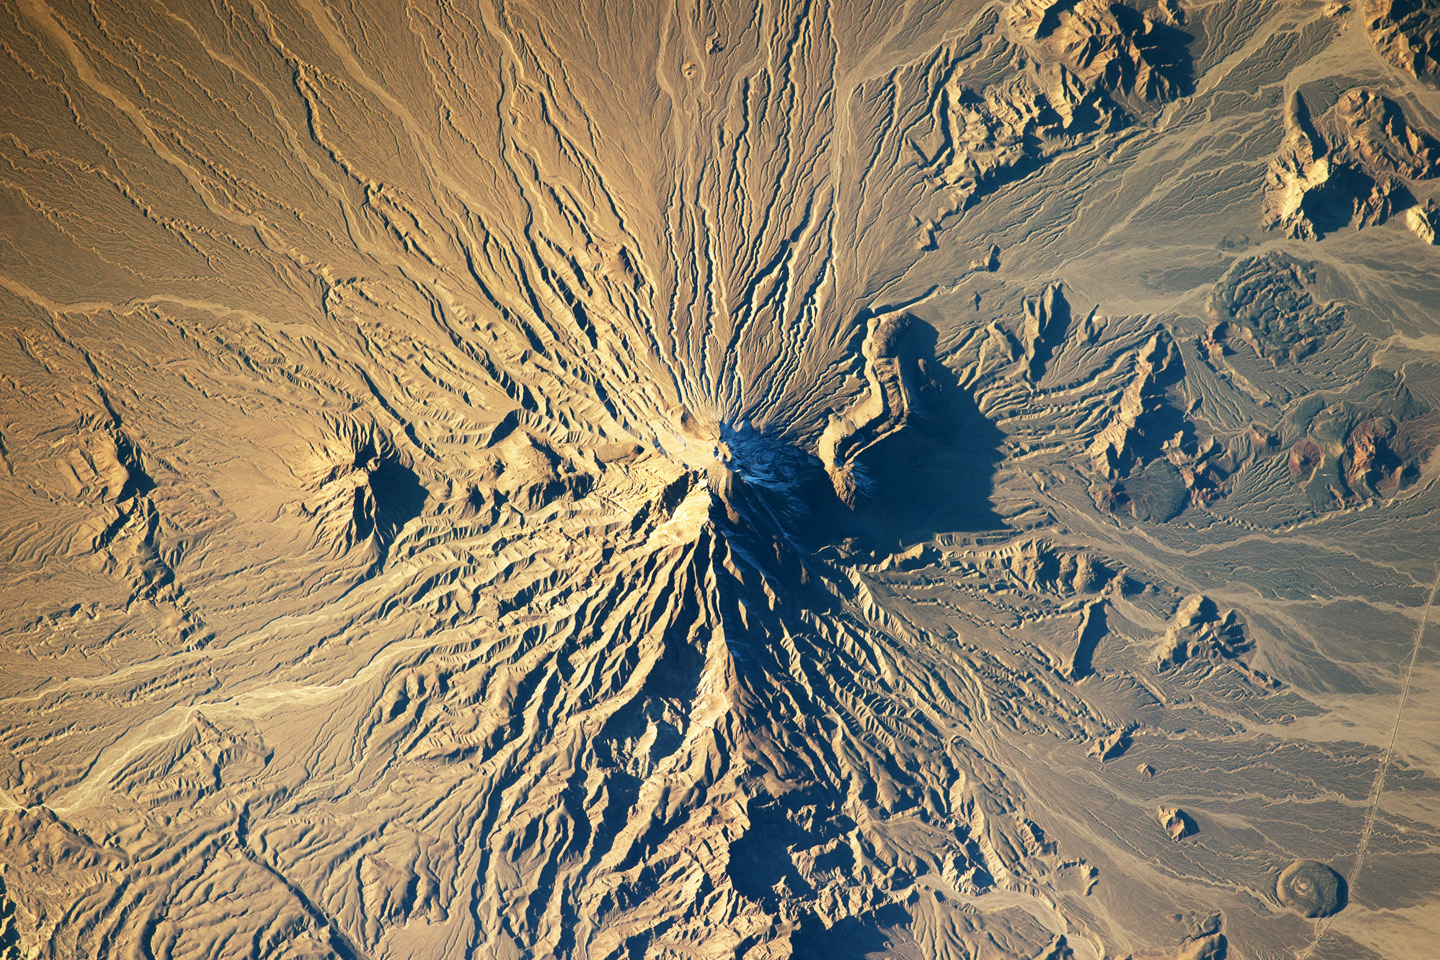 Bazman volcano is located in a remote region of southern Iran. While the volcano has the classic cone shape of a stratovolcano, it is also heavily dissected by channels that extend downwards from summit. This radial drainage pattern—similar to the spokes of a bicycle wheel—is readily observed from the International Space Station on Jan. 5, 2014.